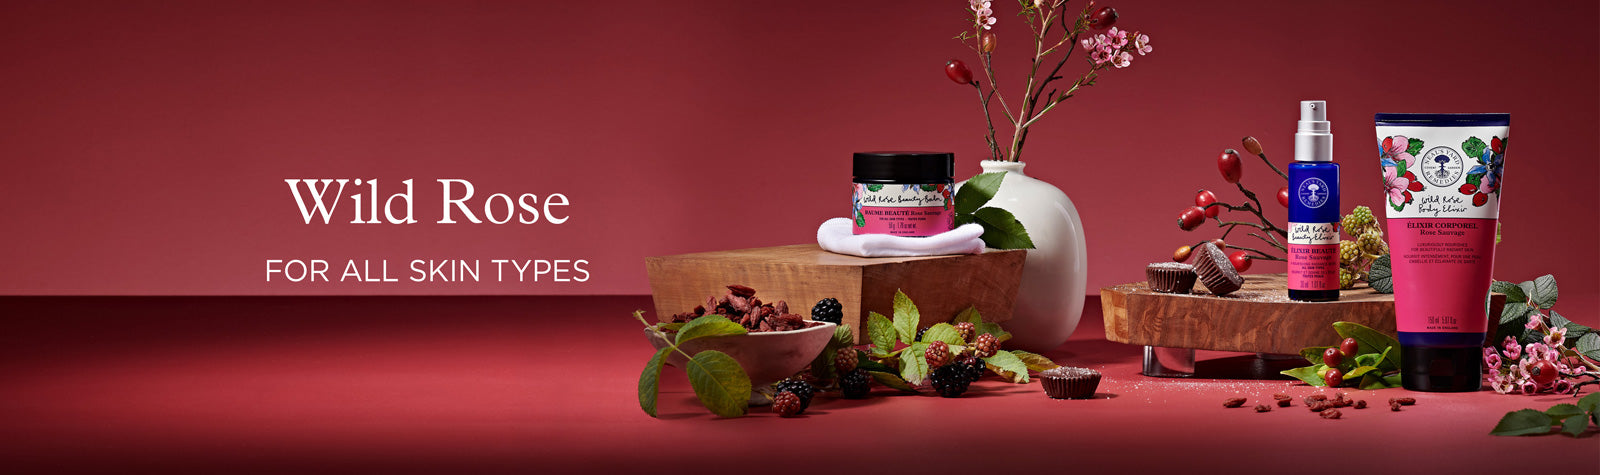 Wild Rose Collection - organic skin care for all skin types